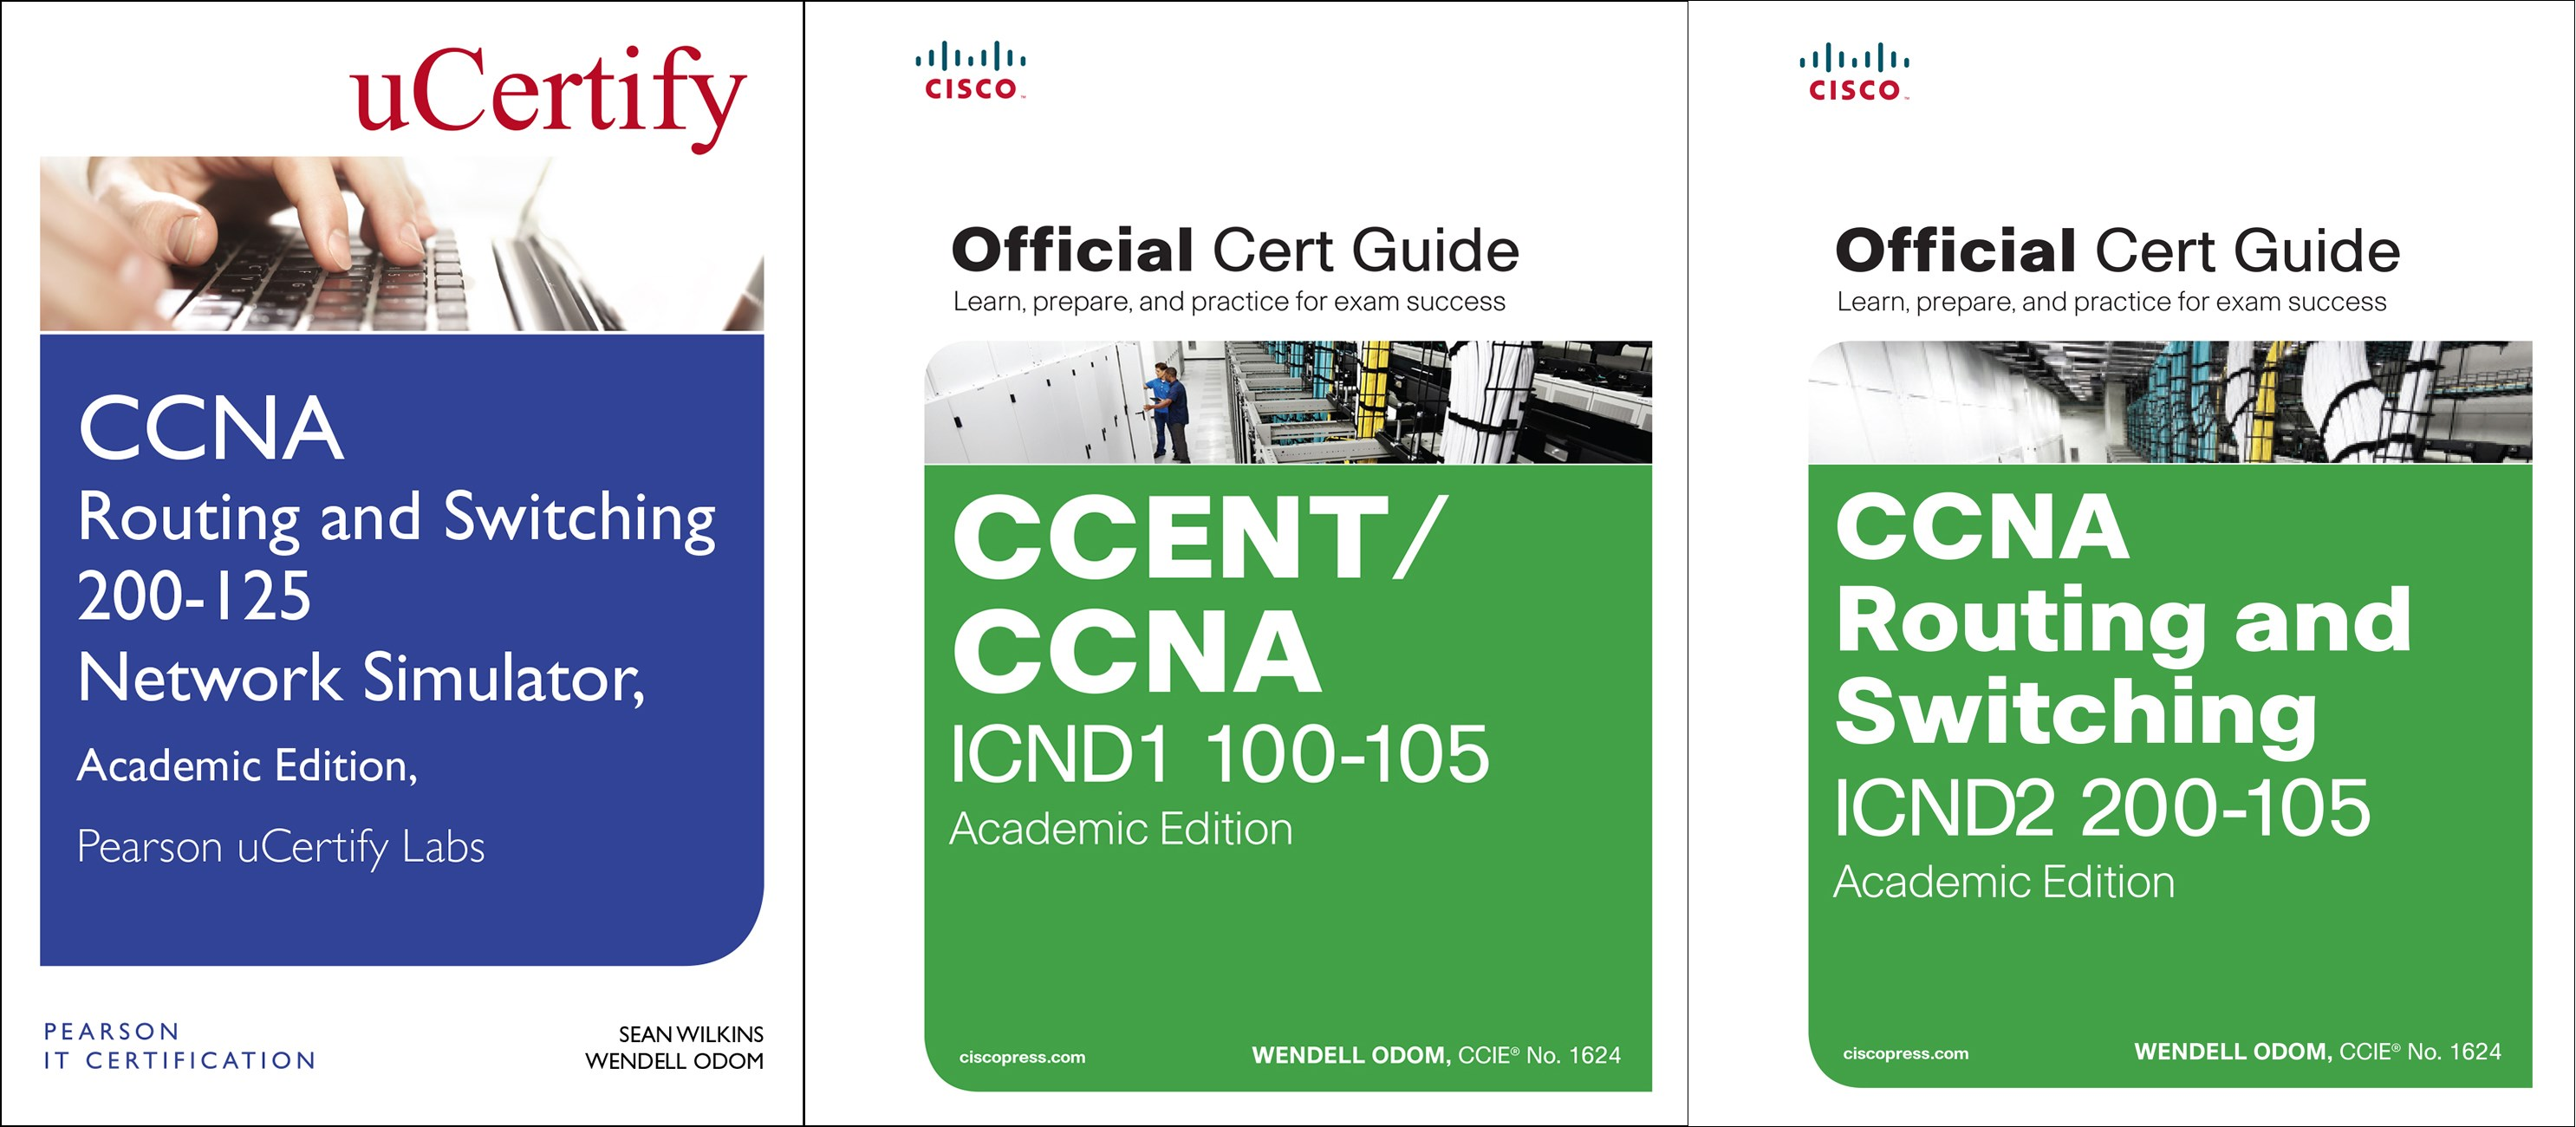 CCNA Routing and Switching 200-125 Official Cert Guide Library and Pearson uCertify Network Simulator Academic Edition Bundle